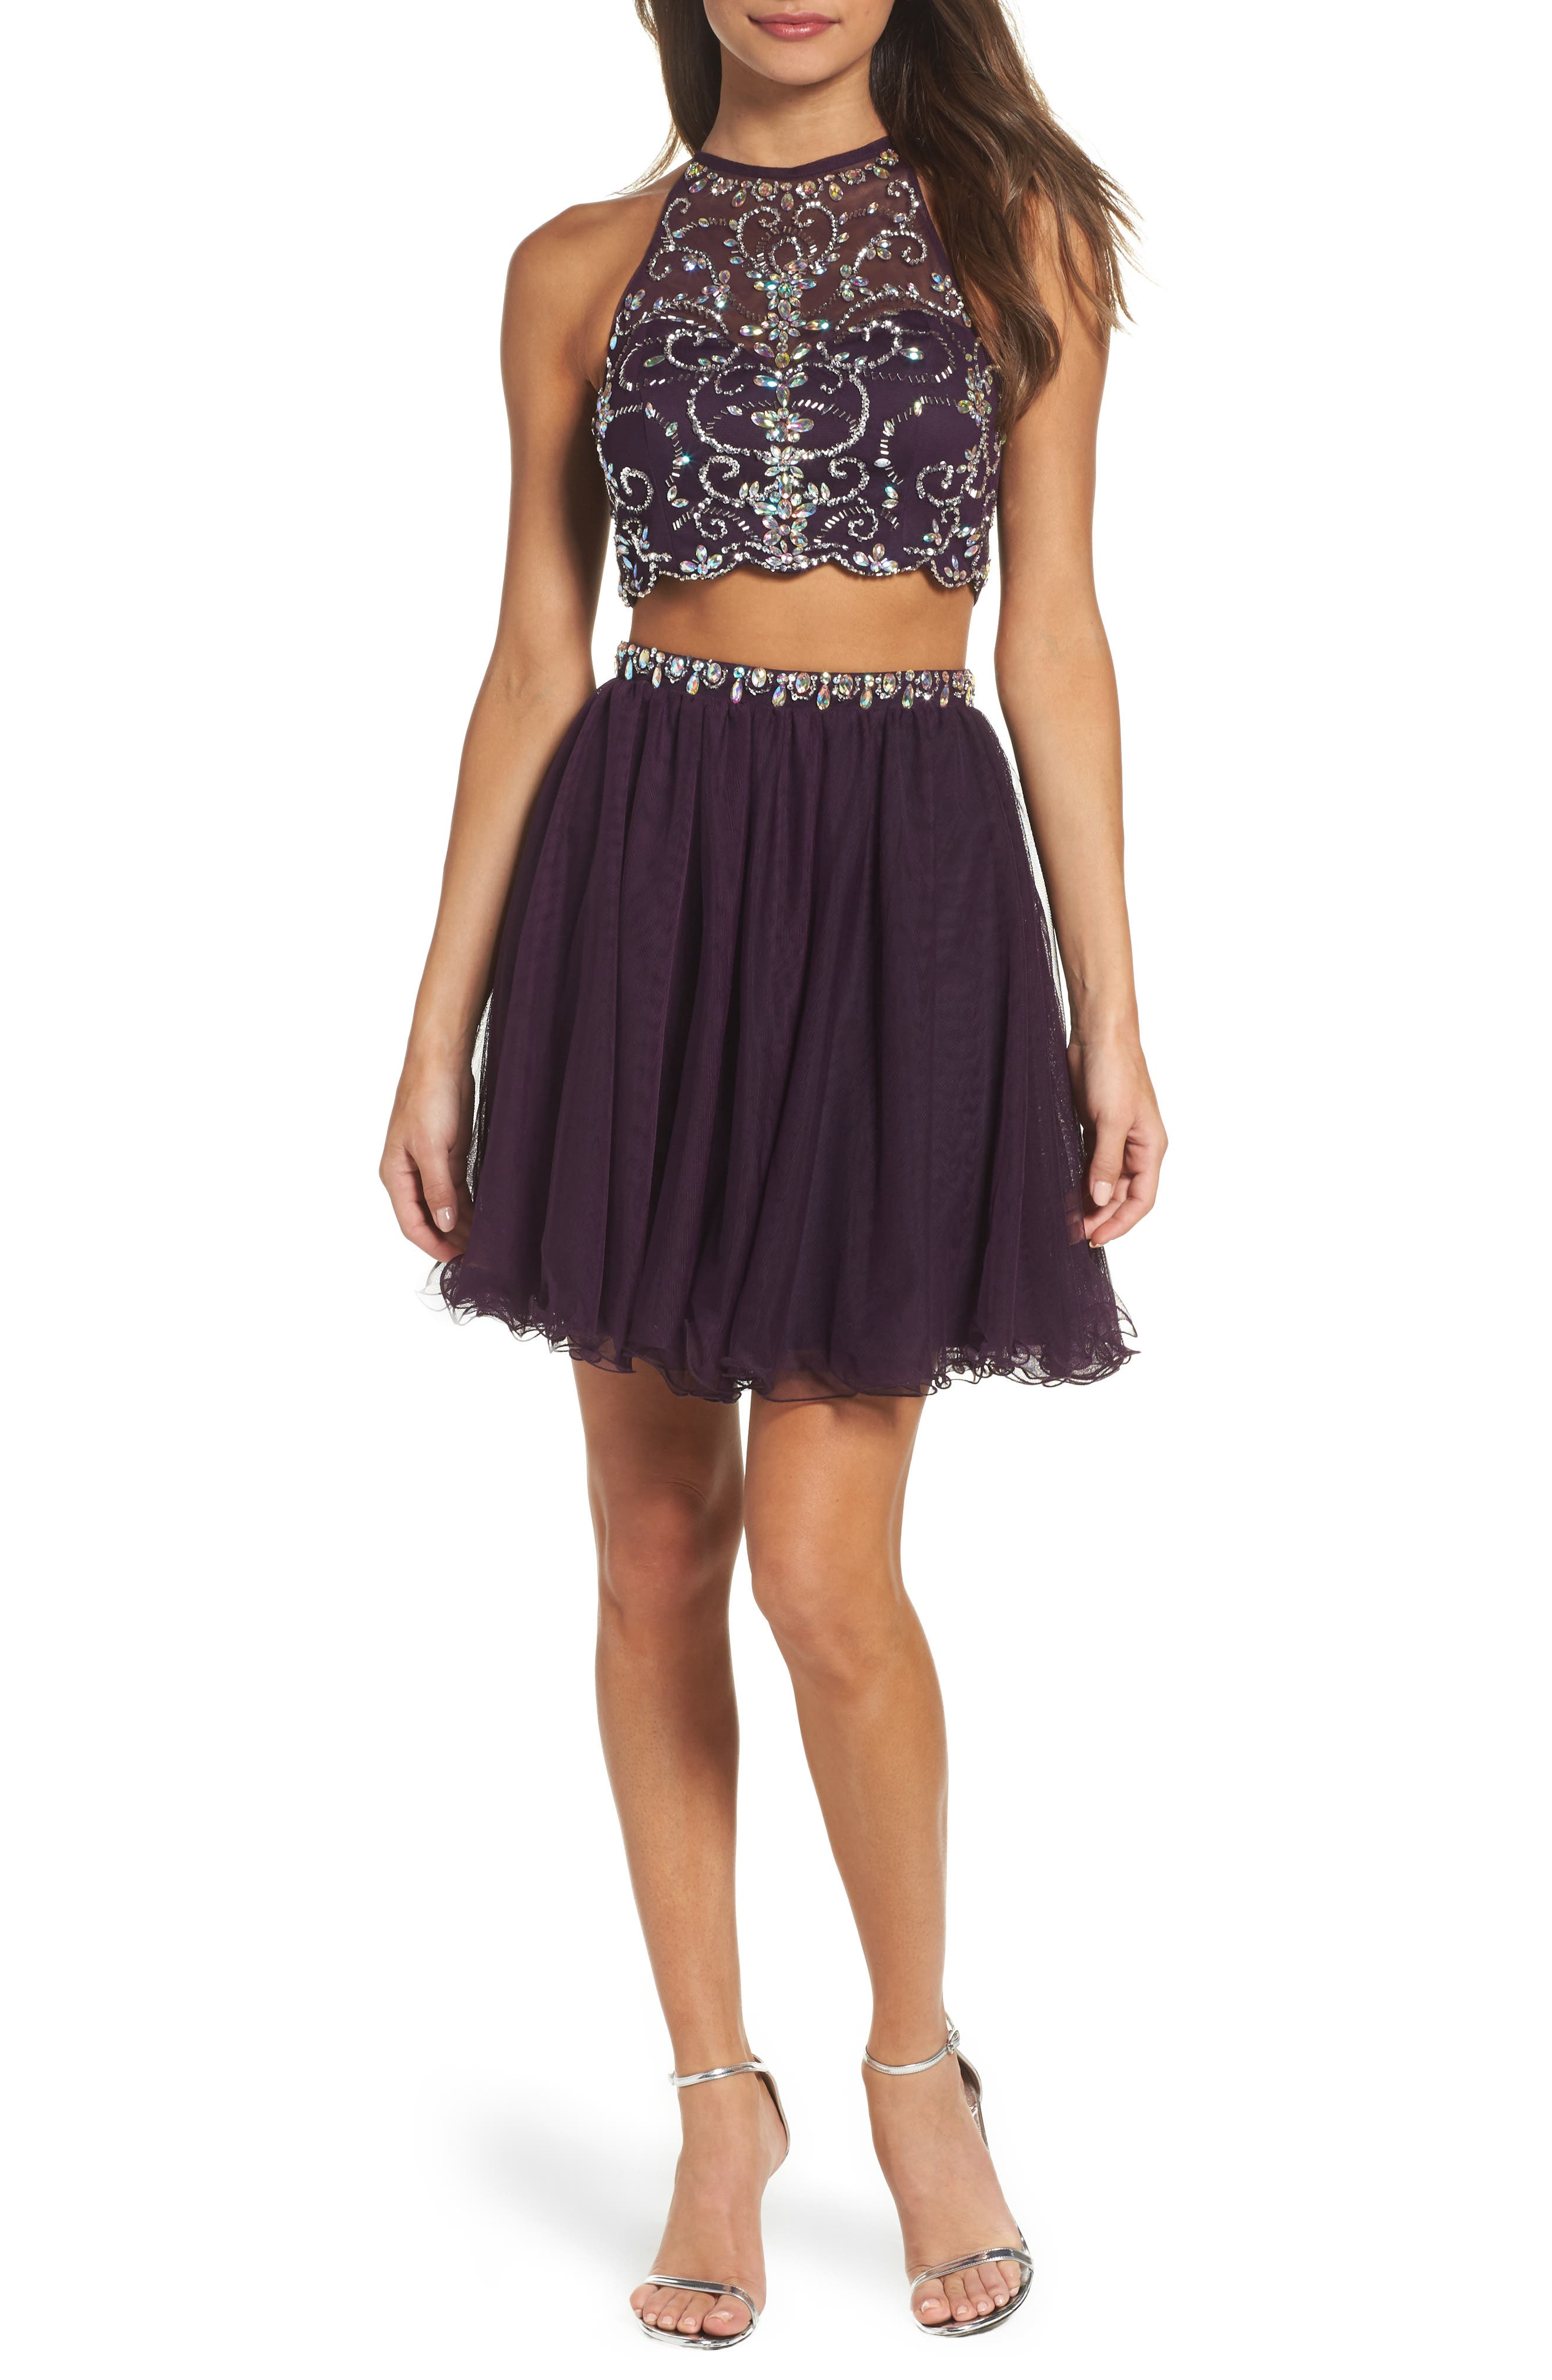 Main Image - Blondie Nites Embellished Two-Piece Fit & Flare Dress